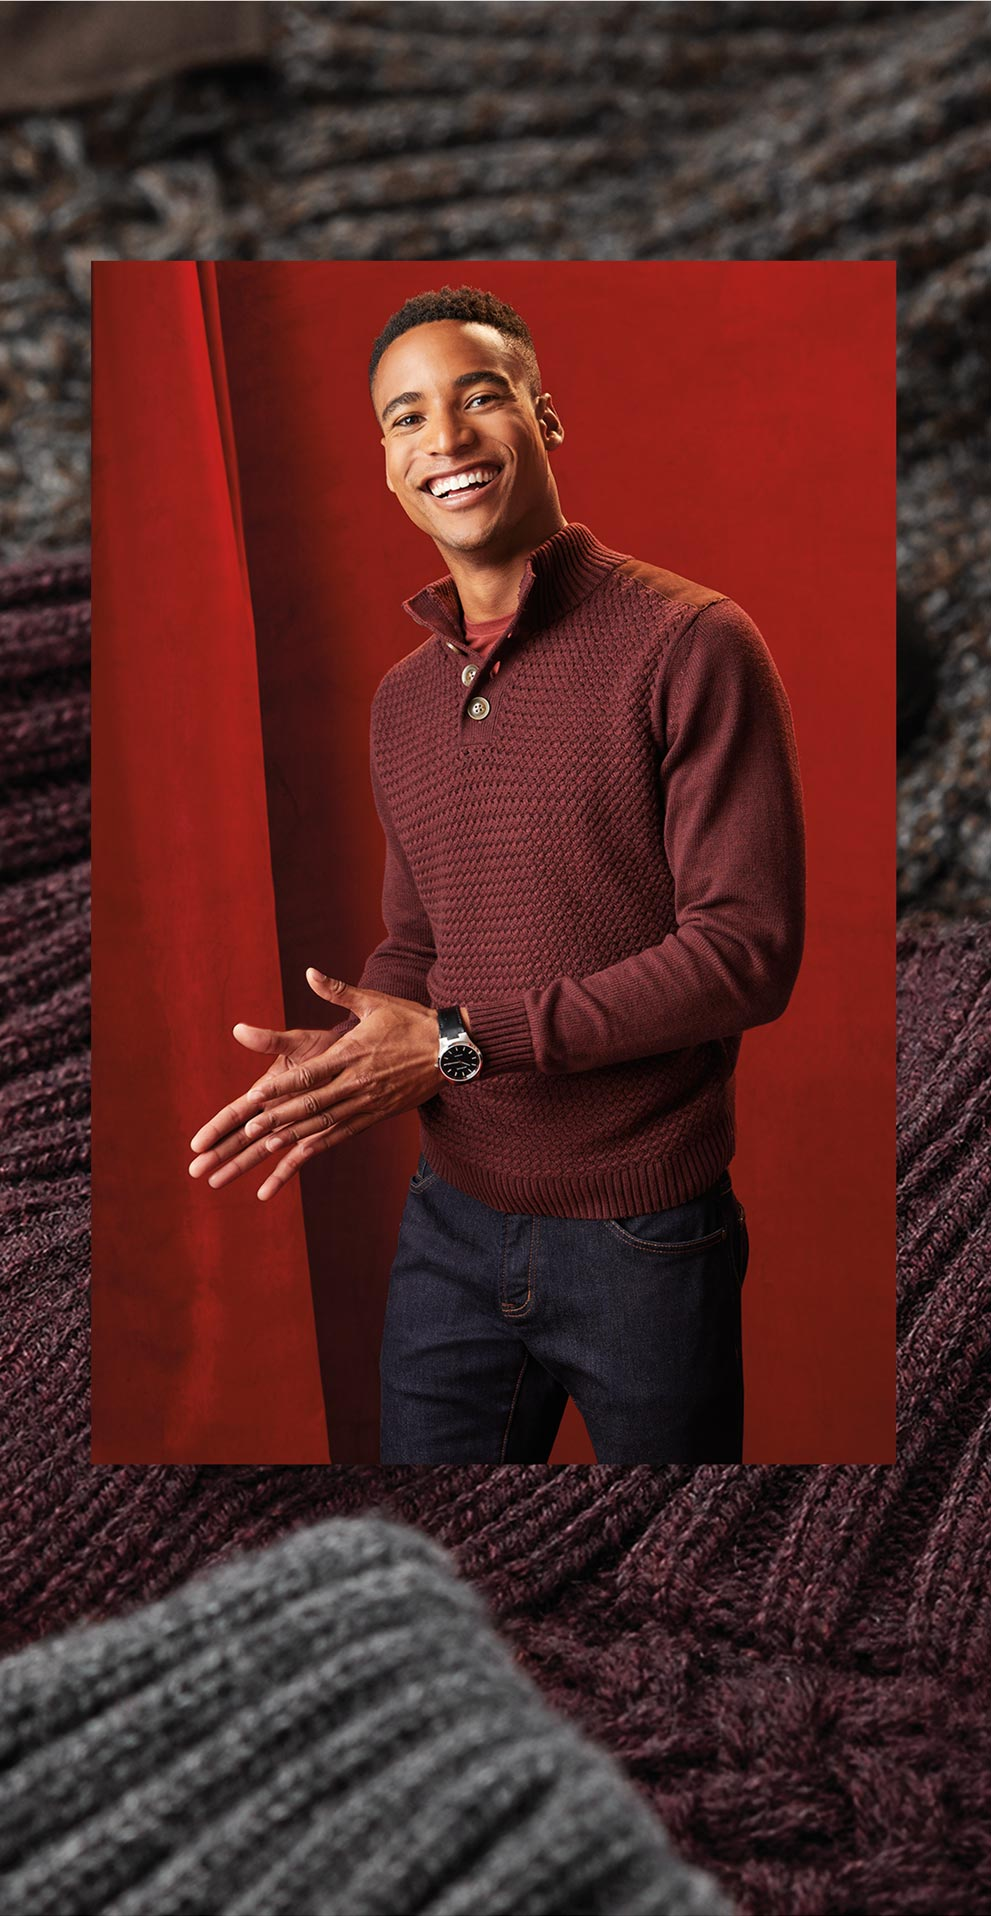 Men wearing a red sweater from Rw & Co